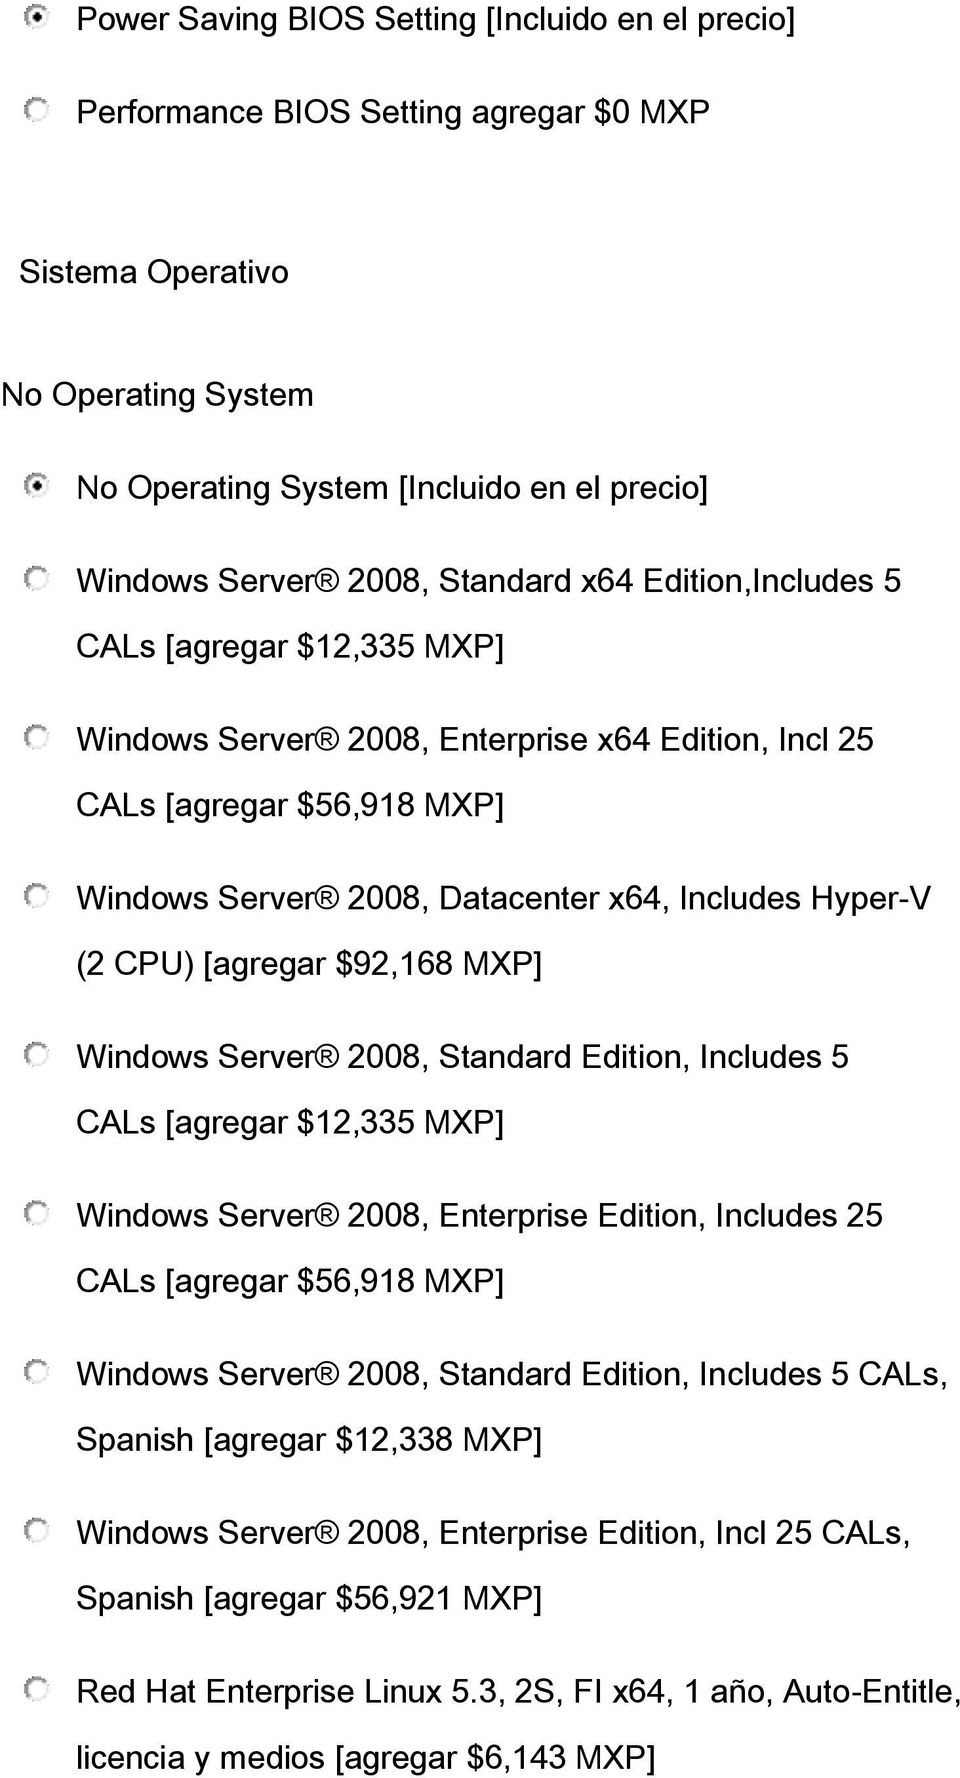 CPU) [agregar $92,168 MXP] Windows Server 2008, Standard Edition, Includes 5 CALs [agregar $12,335 MXP] Windows Server 2008, Enterprise Edition, Includes 25 CALs [agregar $56,918 MXP] Windows Server